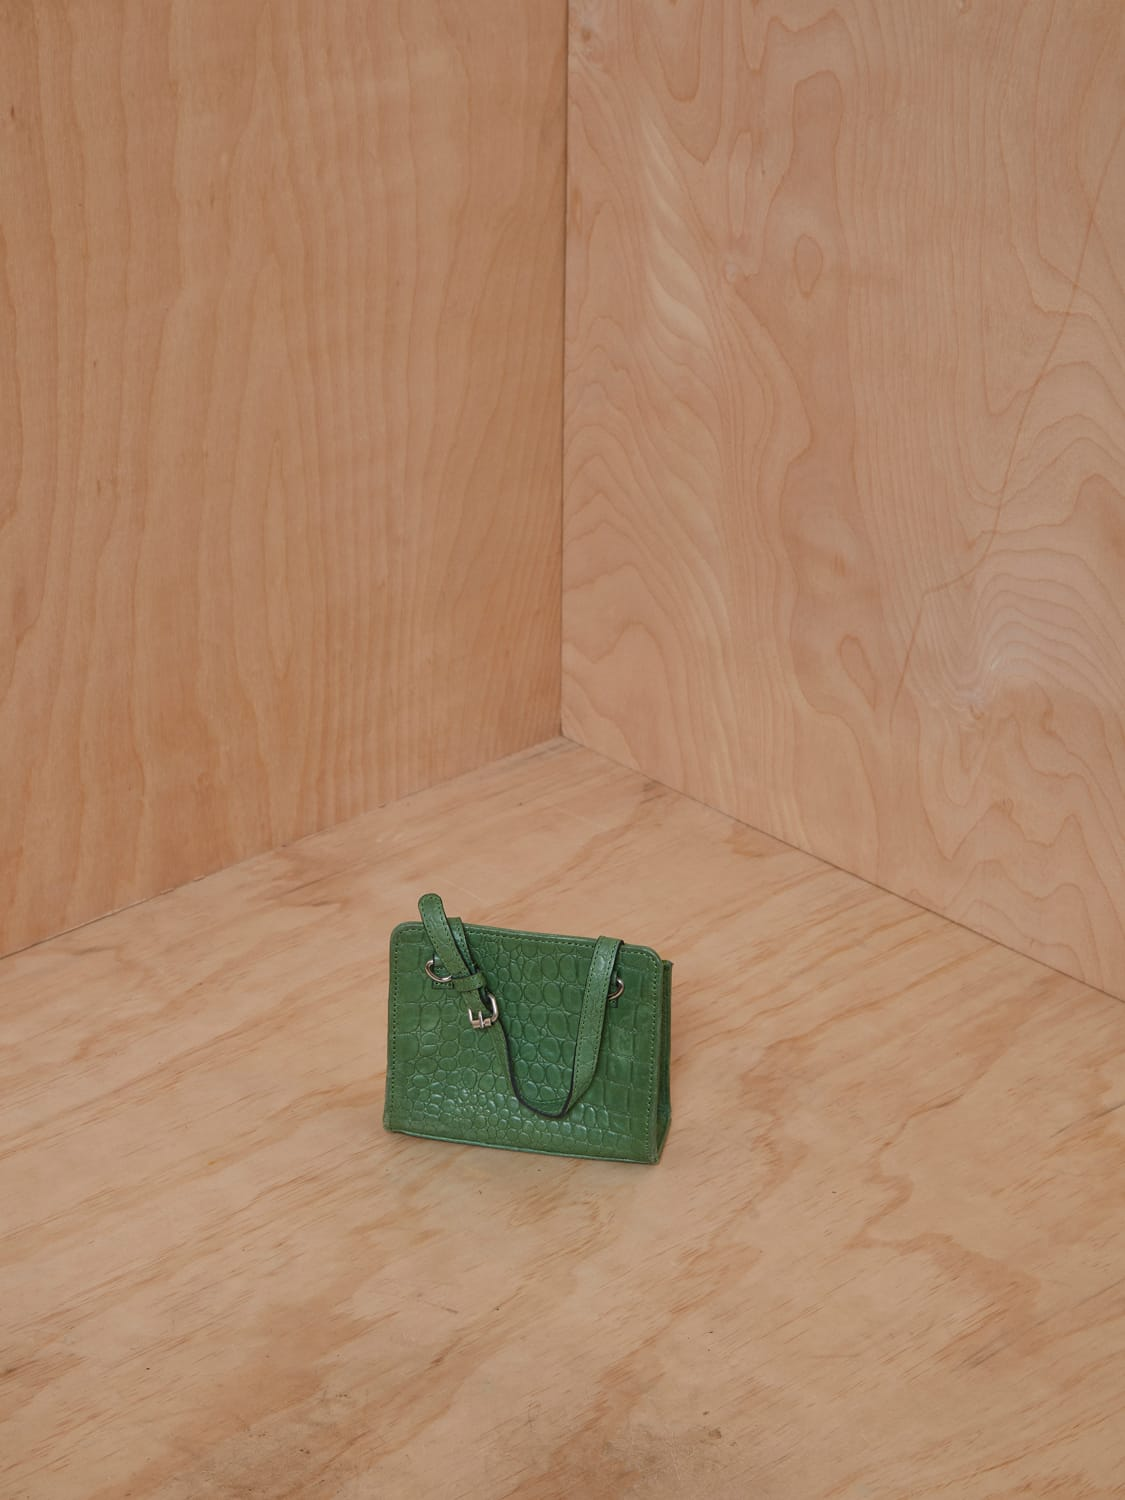 Alfeya Valrina Green Croc Embossed Leather Mini Purse